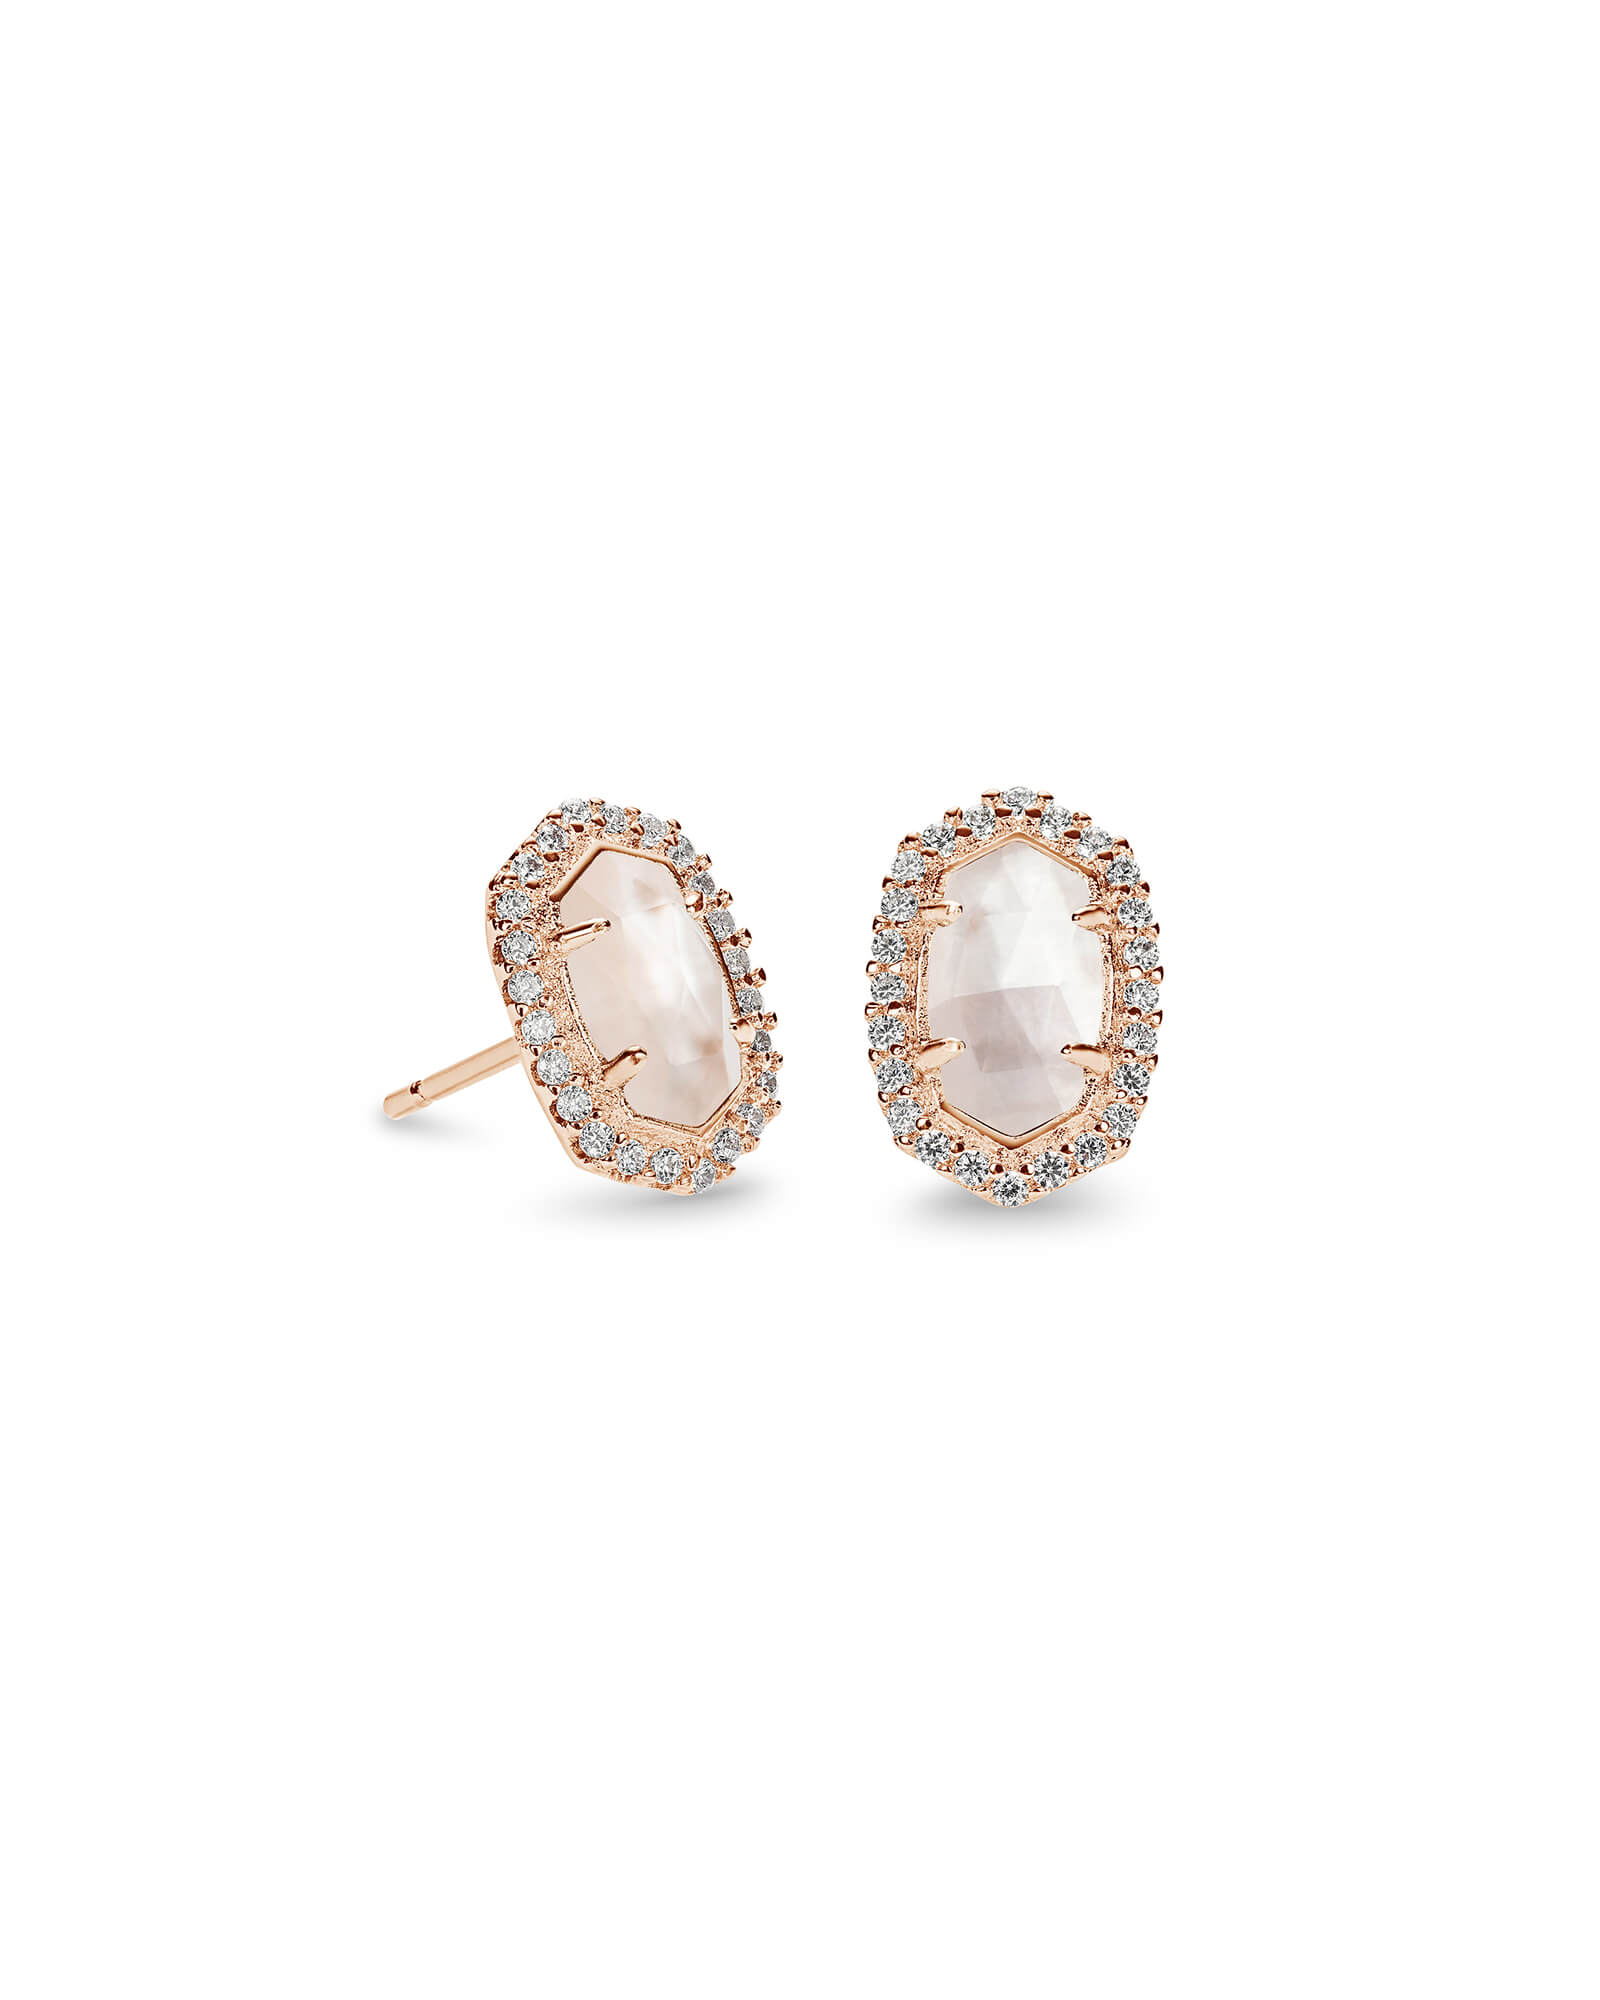 Cade Rose Gold Stud Earrings In Ivory Pearl by Kendra Scott